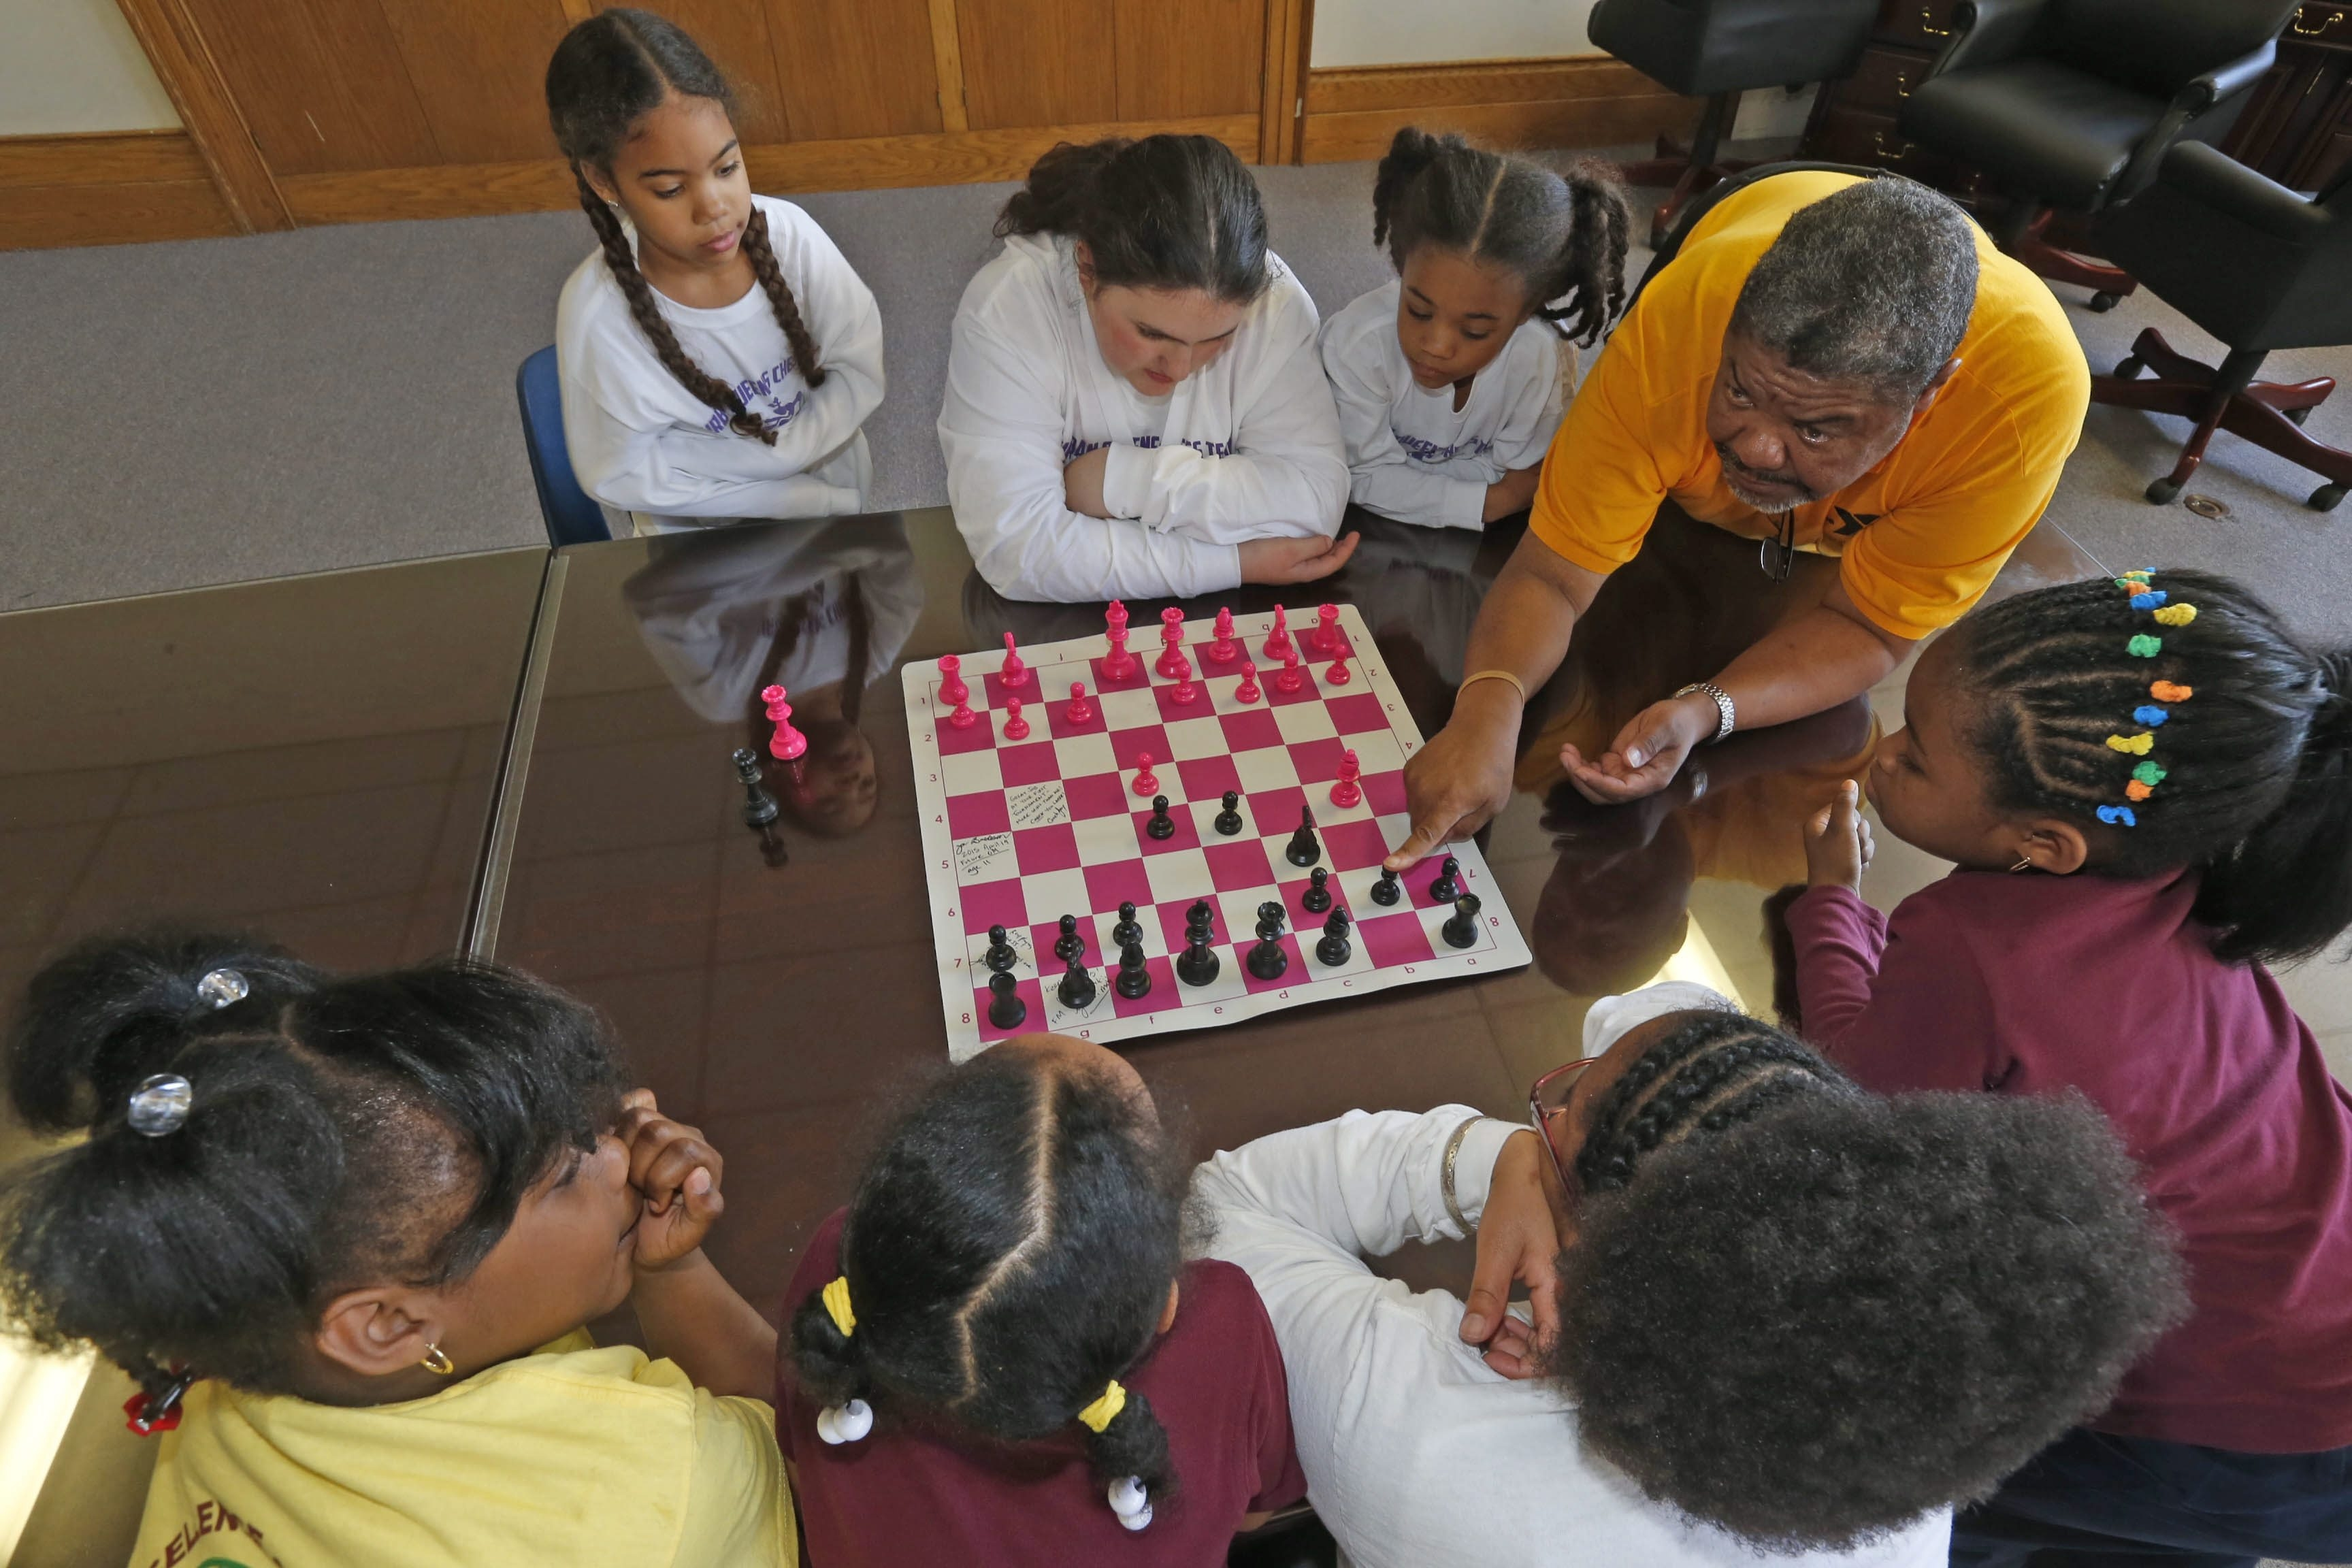 Urban Queens Chess Team coach Michael A. McDuffie discusses chess moves with, clockwise from top, Victoria Albain, 7; Bryanna Ely, 13; Angelina Albain, 8; Ary'ana Griffa, 8; Antoinette Marshall, 10; Janiyah Ward, 7; and Rayven Jones, 8.